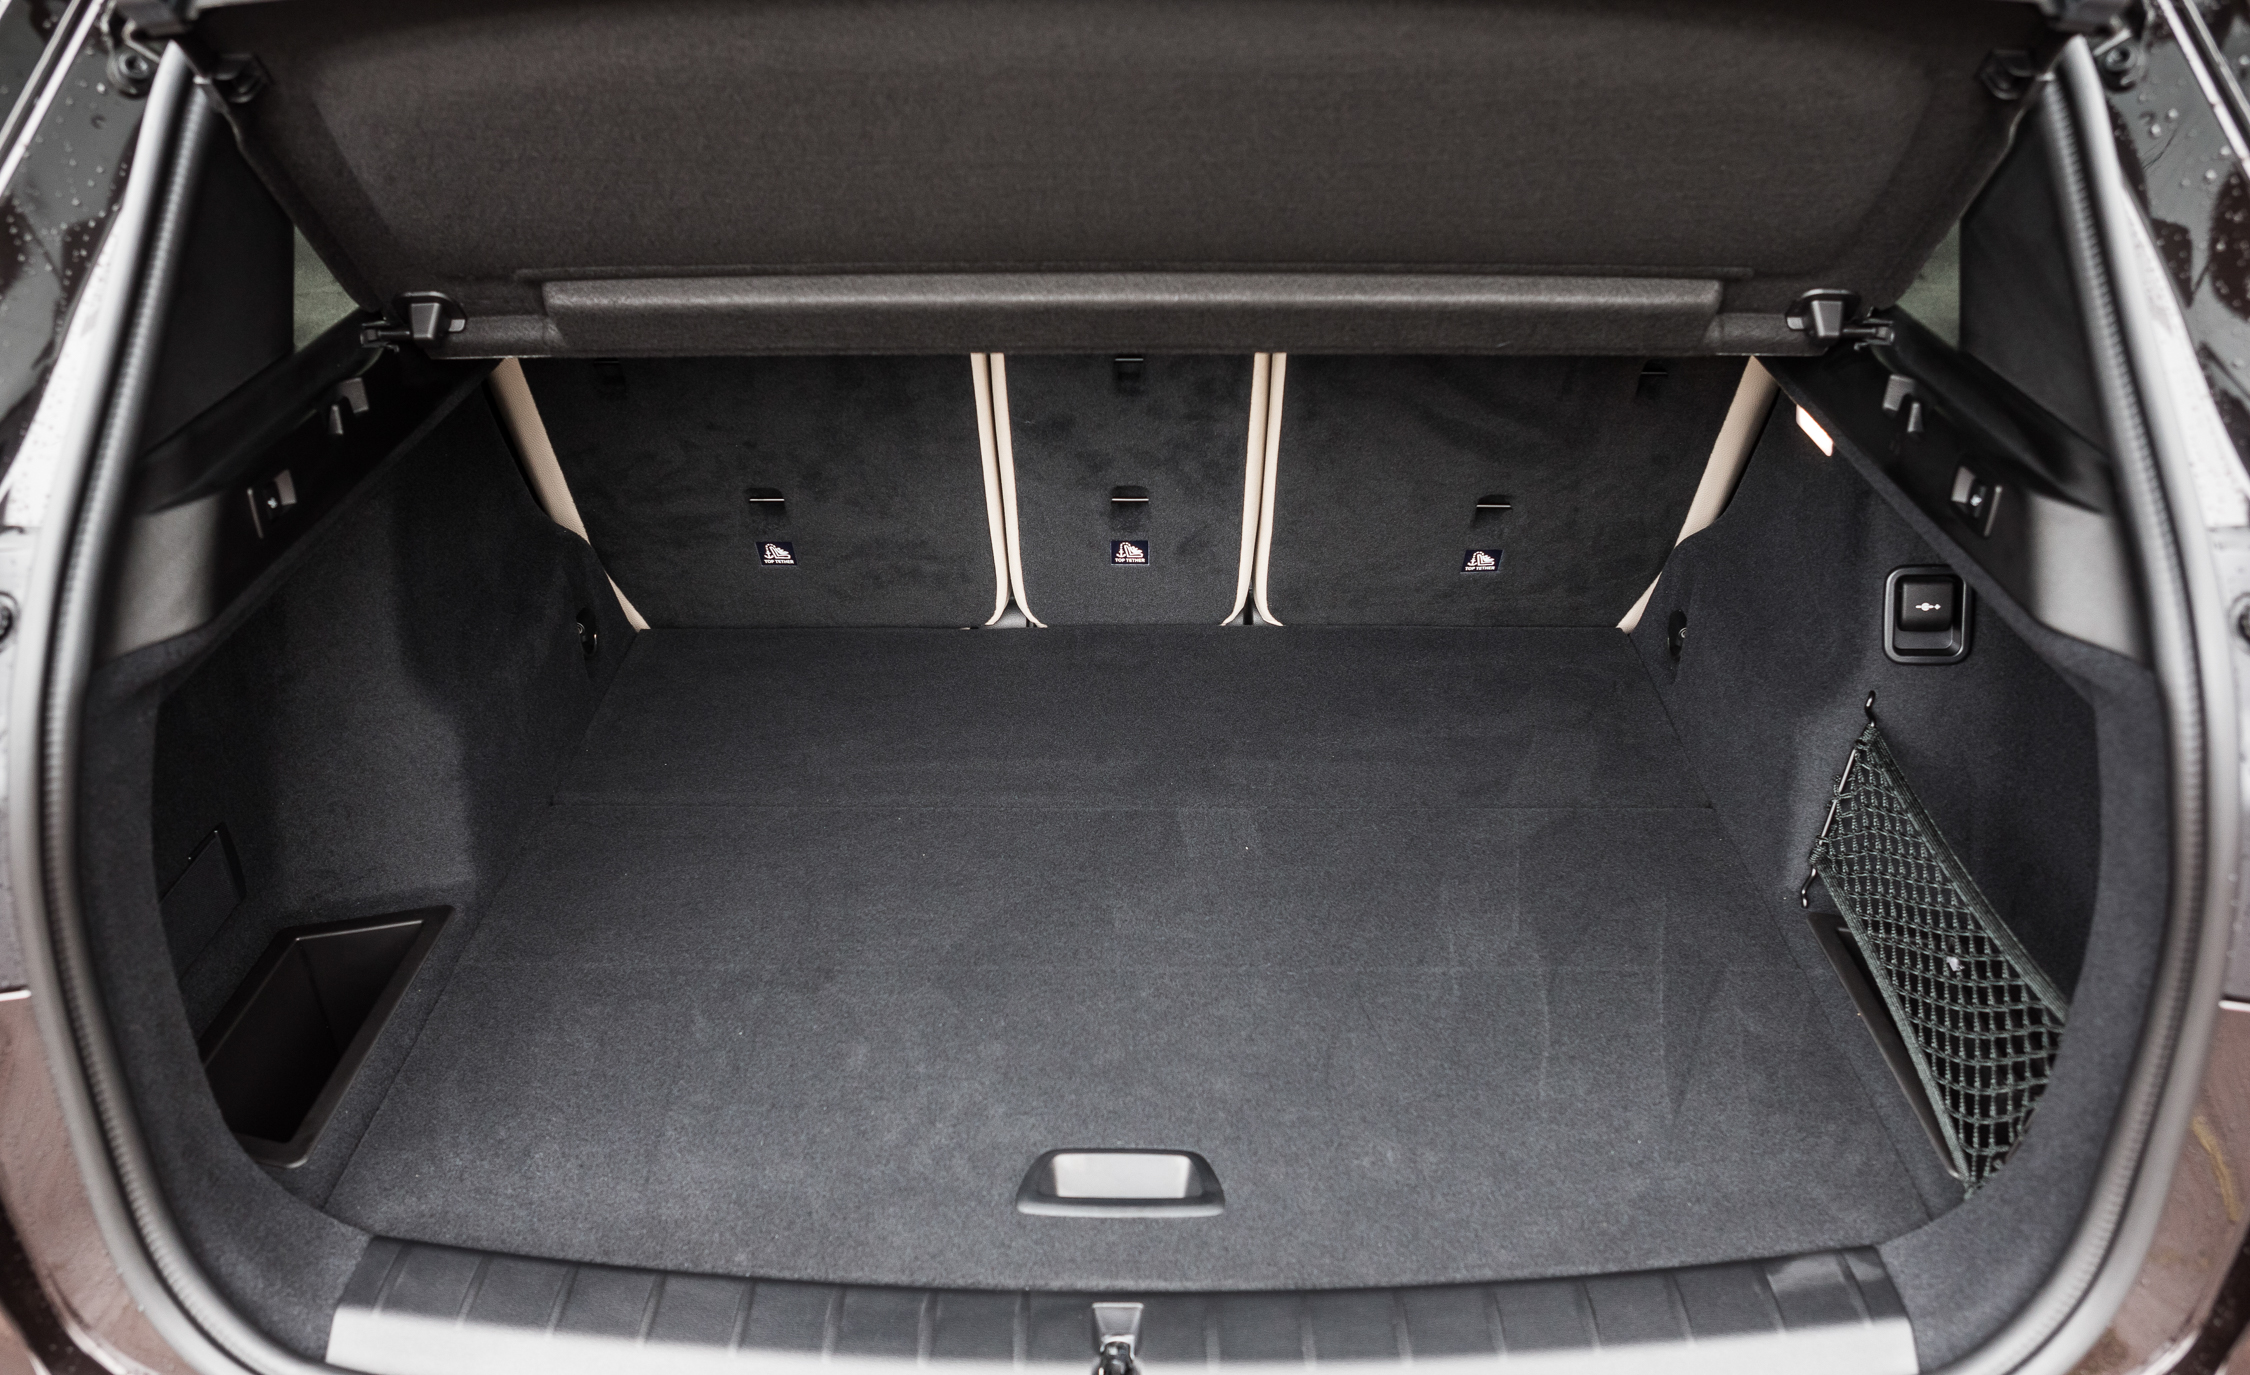 2016 BMW X1 Interior View Cargo Space (Photo 23 of 36)